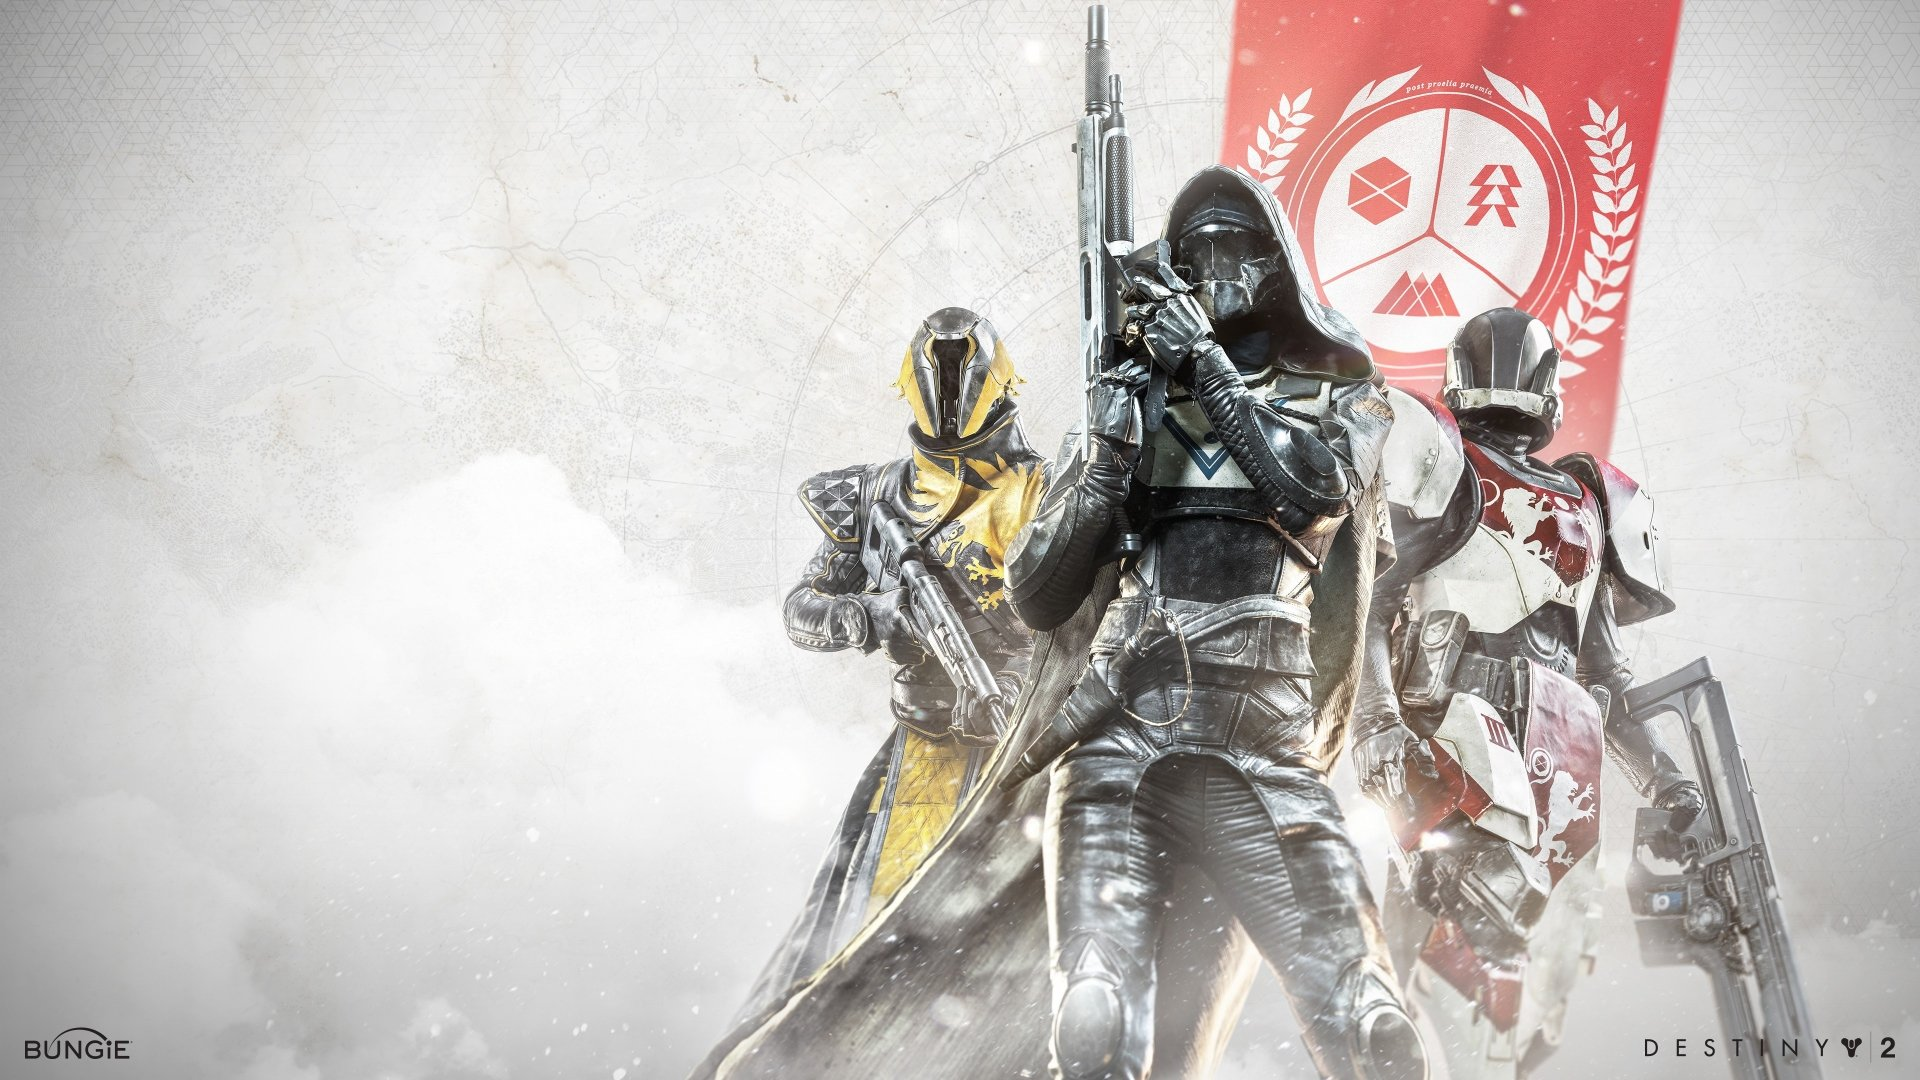 77 4k Ultra Hd Destiny 2 Wallpapers Background Images Wallpaper Abyss